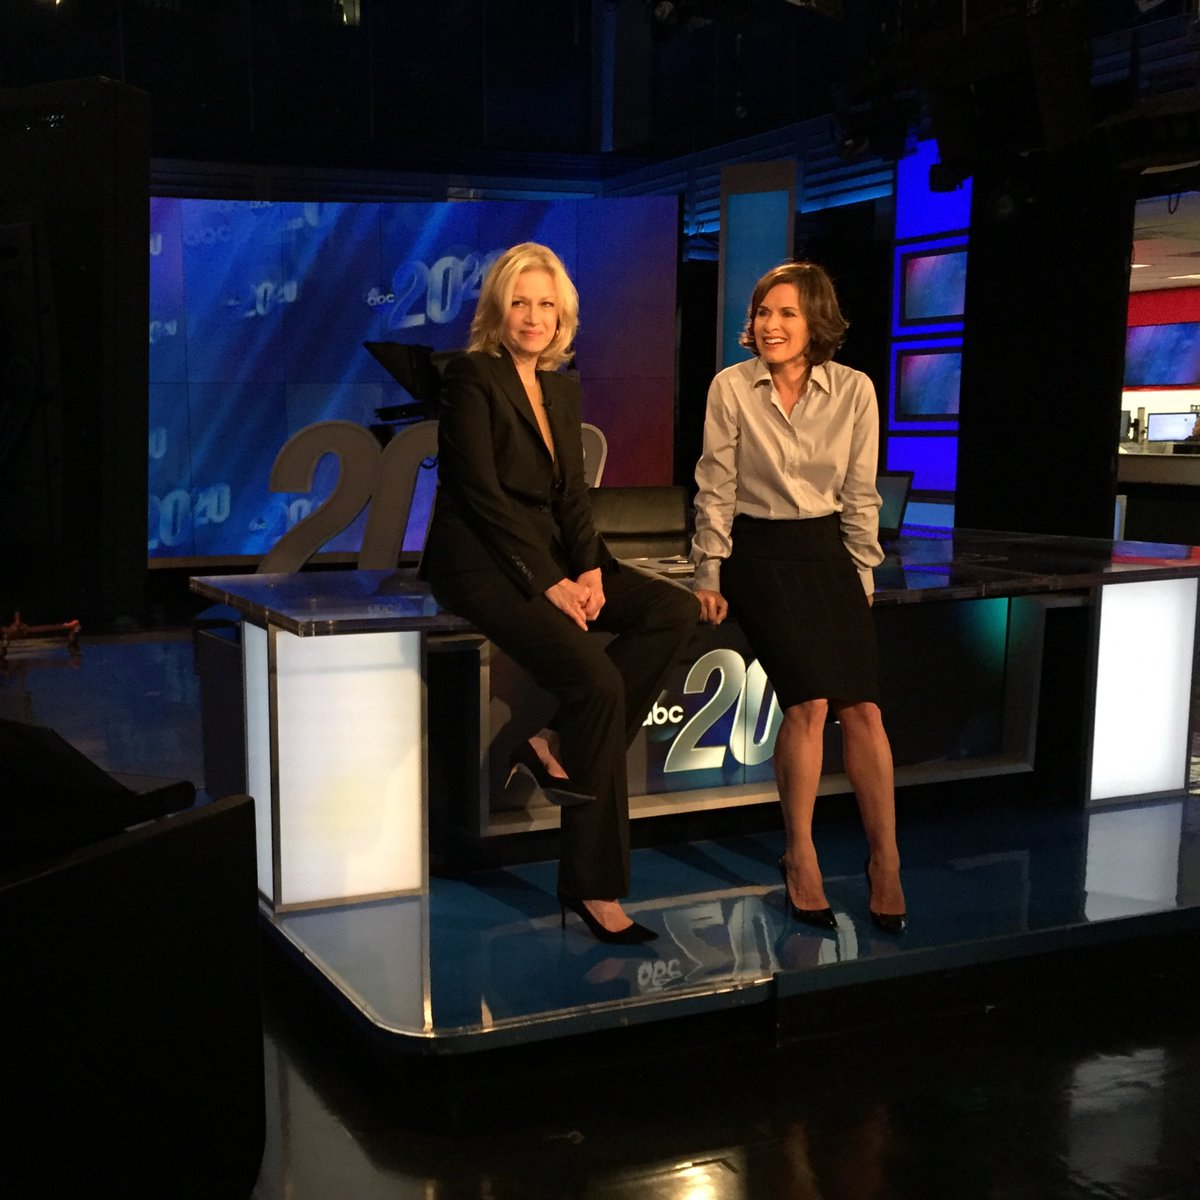 I am so thankful to my friend @DianeSawyer for helping me share my story. Hope 20/20 tonight encourages you https://t.co/cIeAxXiddP